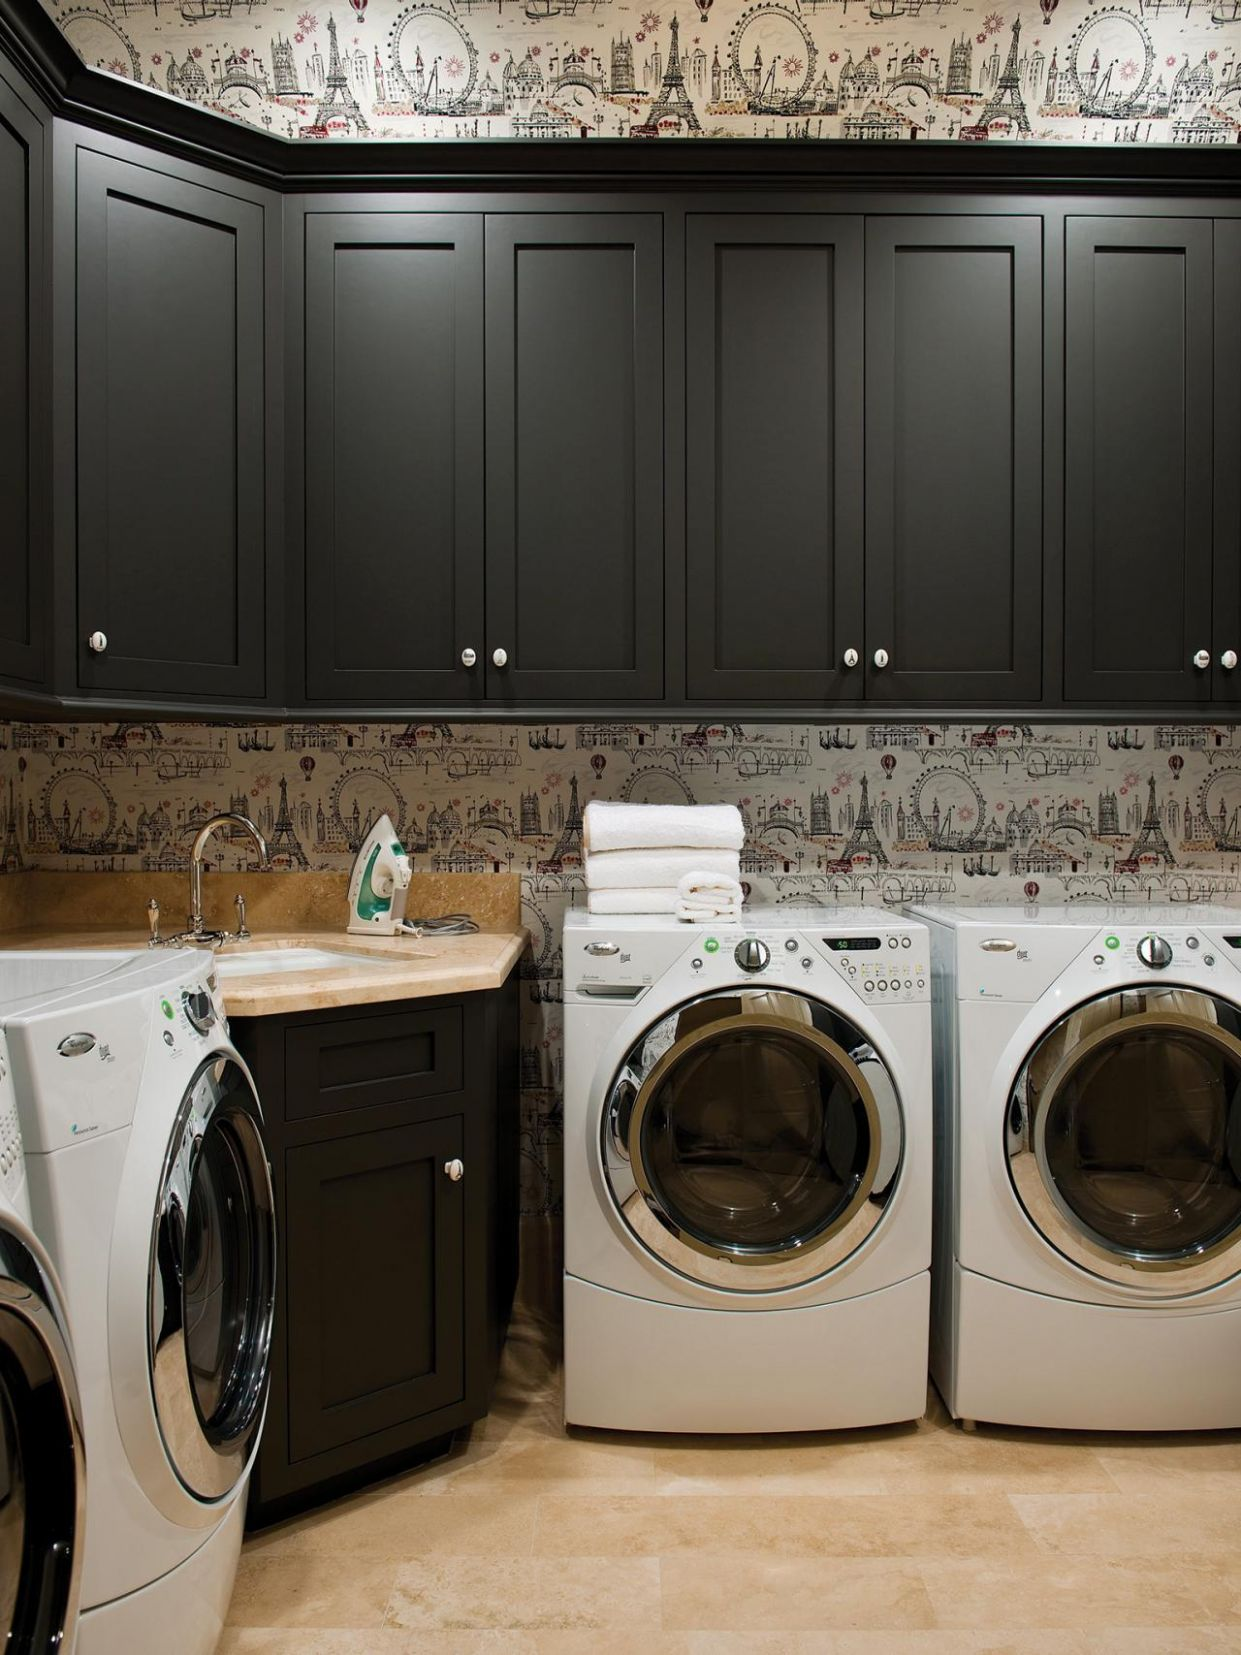 Laundry Room Ideas: Pictures, Options, Tips Advice Hgtv, Dark ..